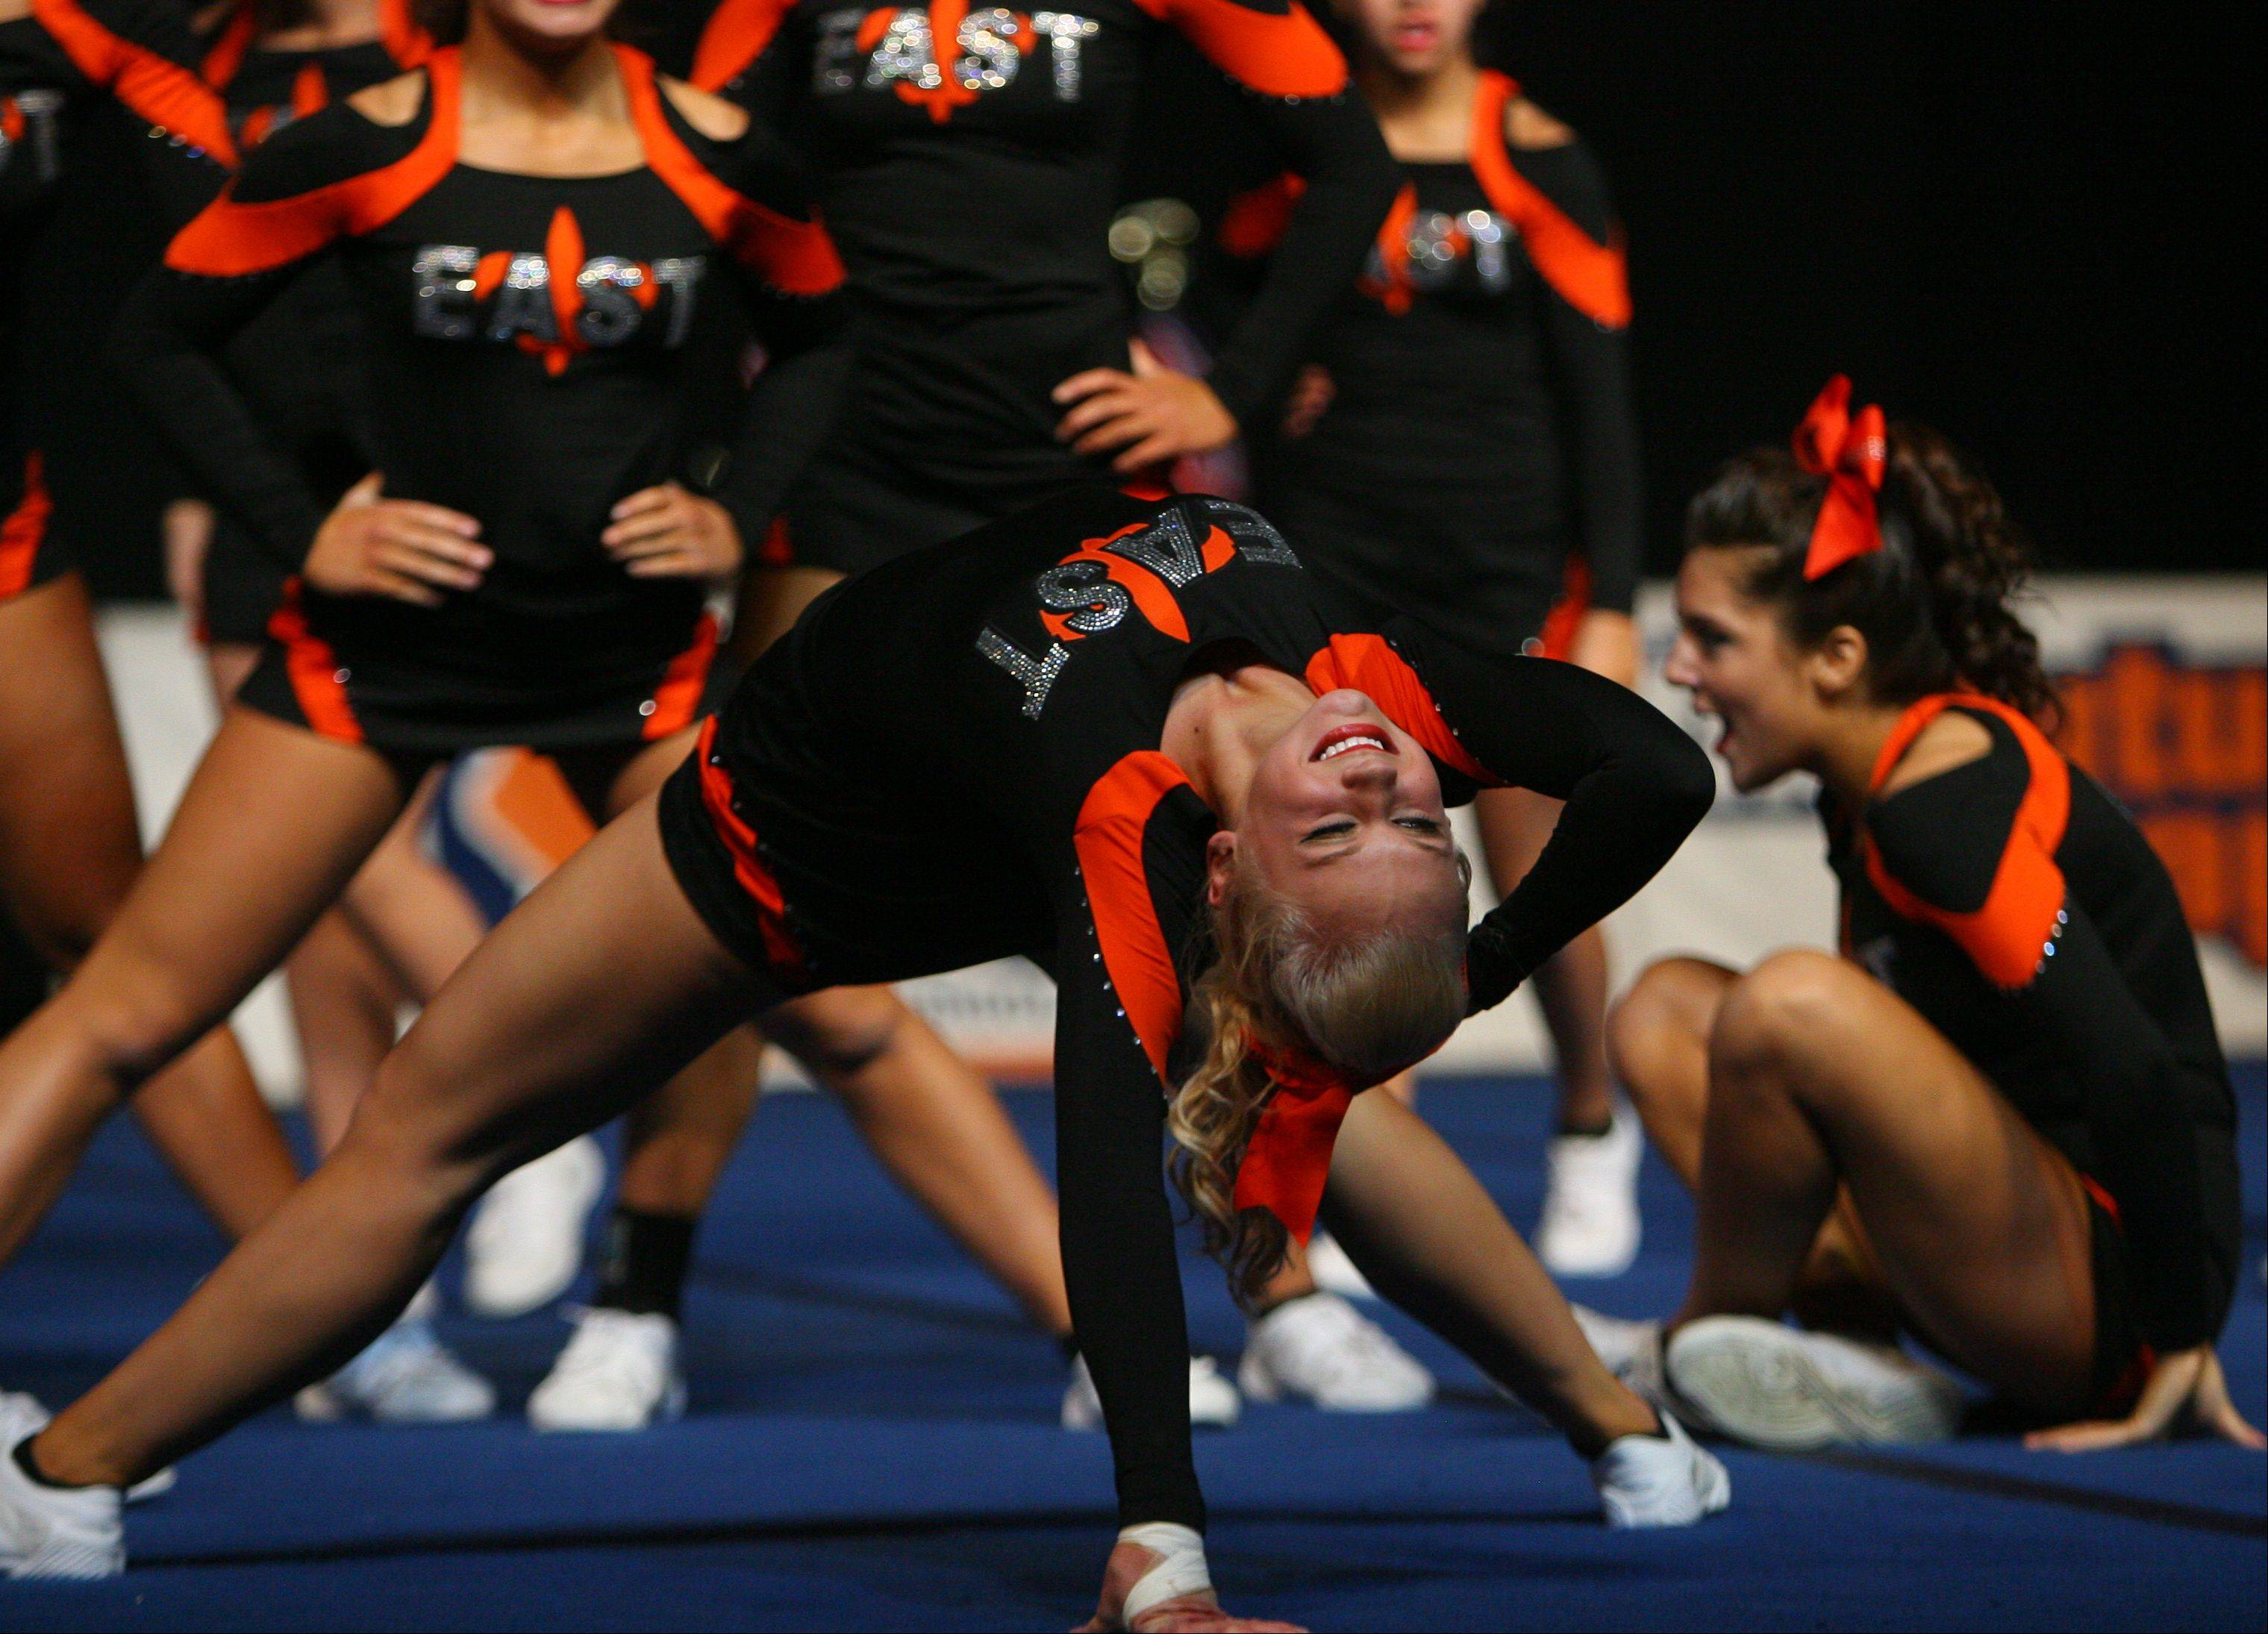 St. Charles East High School waits for the results in the IHSA Competitive Cheerleading finals on Saturday, Feb. 2 at the U.S. Cellular Coliseum in Bloomington.